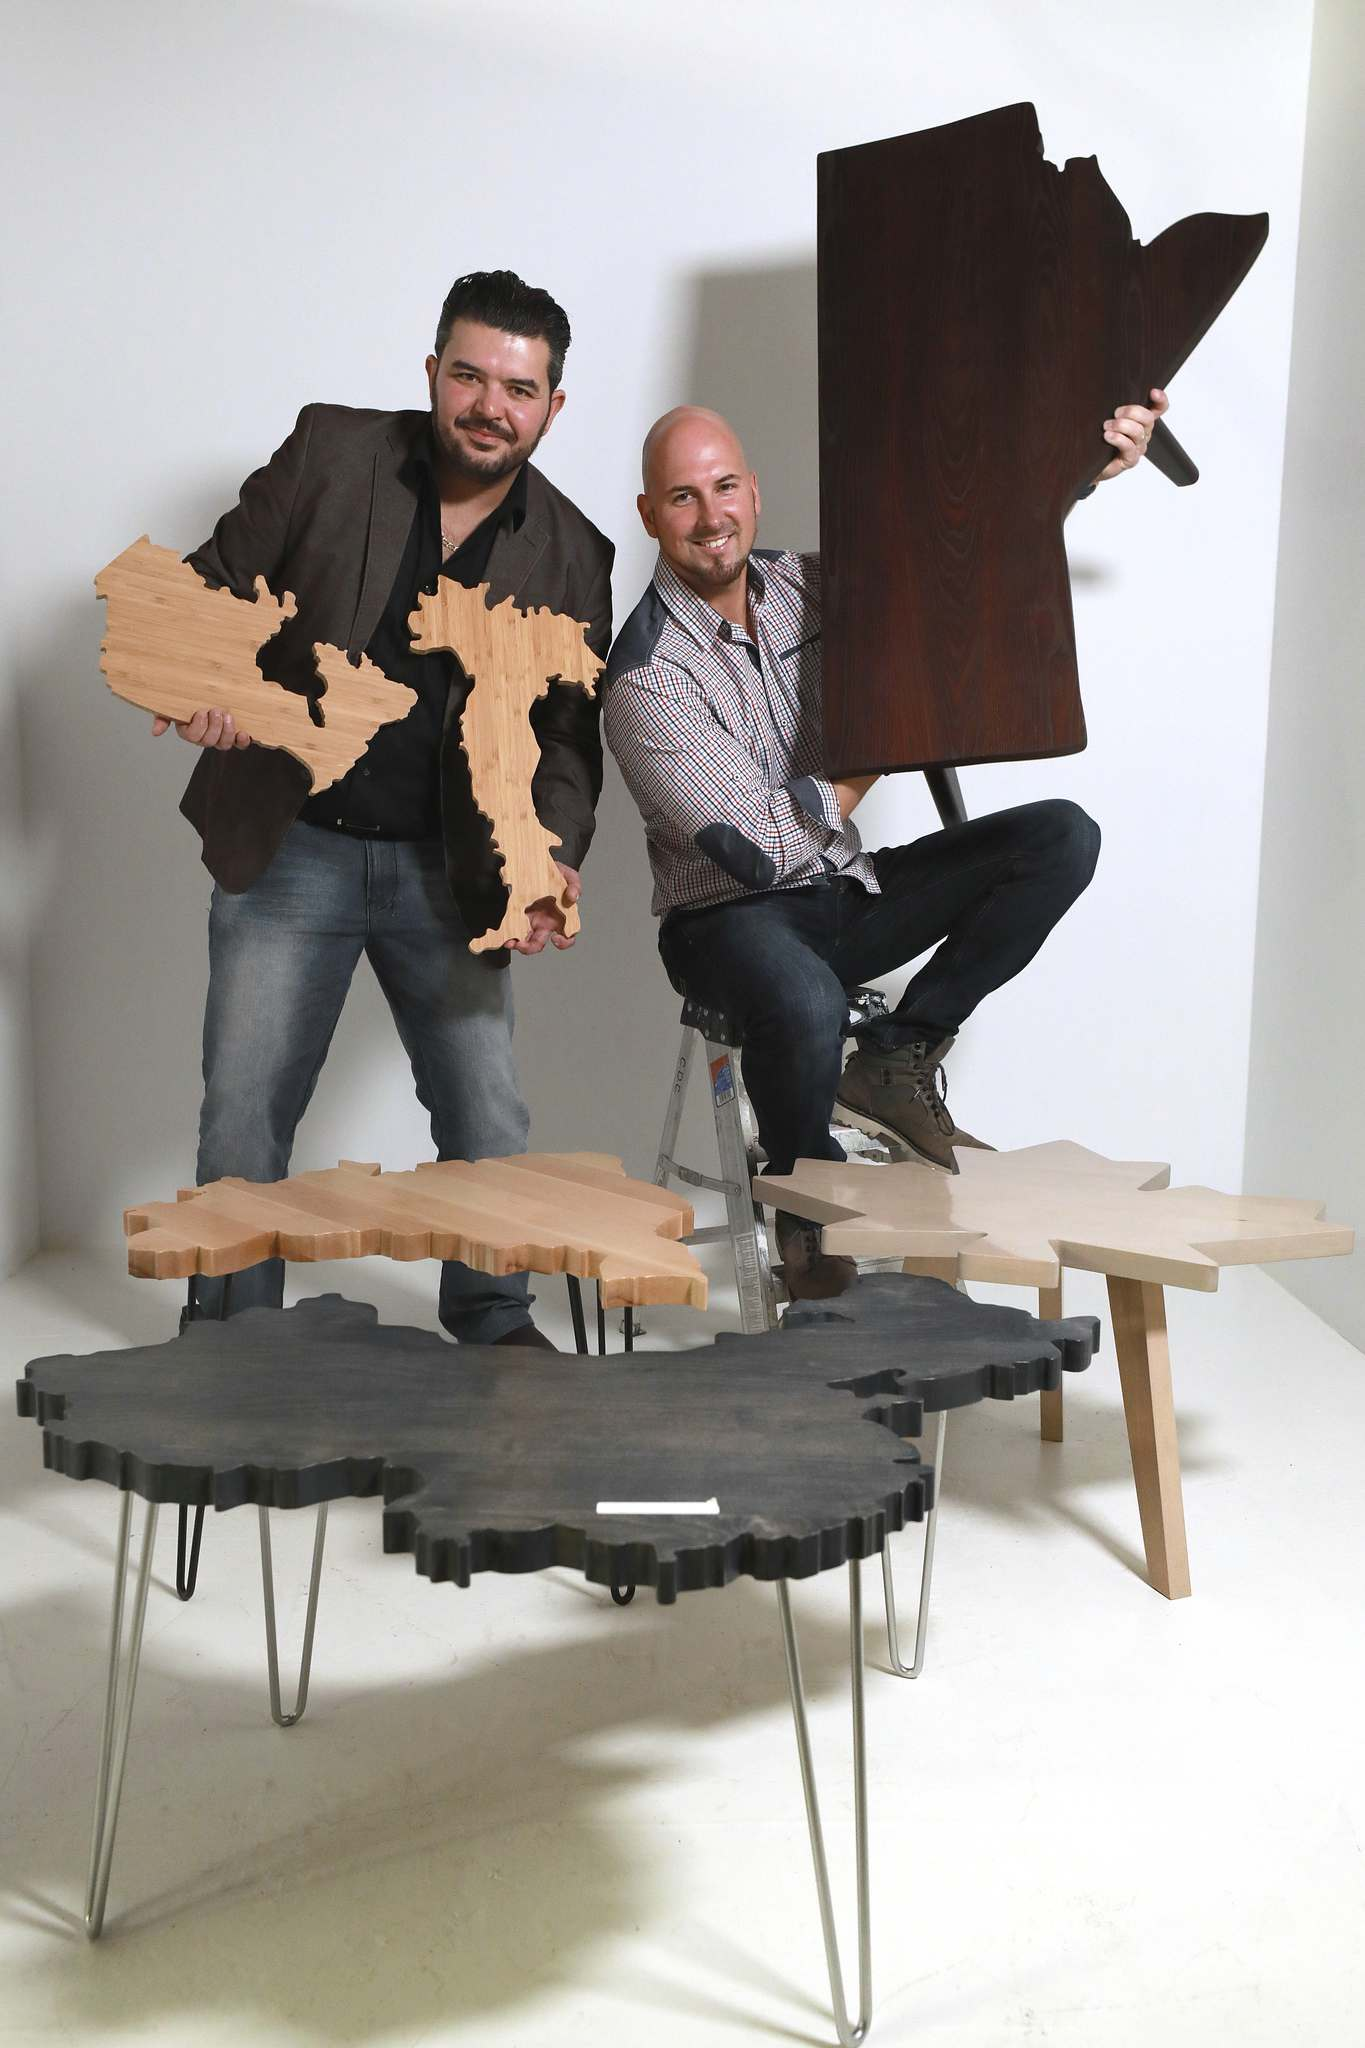 World Table Co. business partners Jason Haddad (right) and Luis Barros with a selection of their tables and boards that are cut out into shapes of countries. (Ruth Bonneville photos / Winnipeg Free Press)